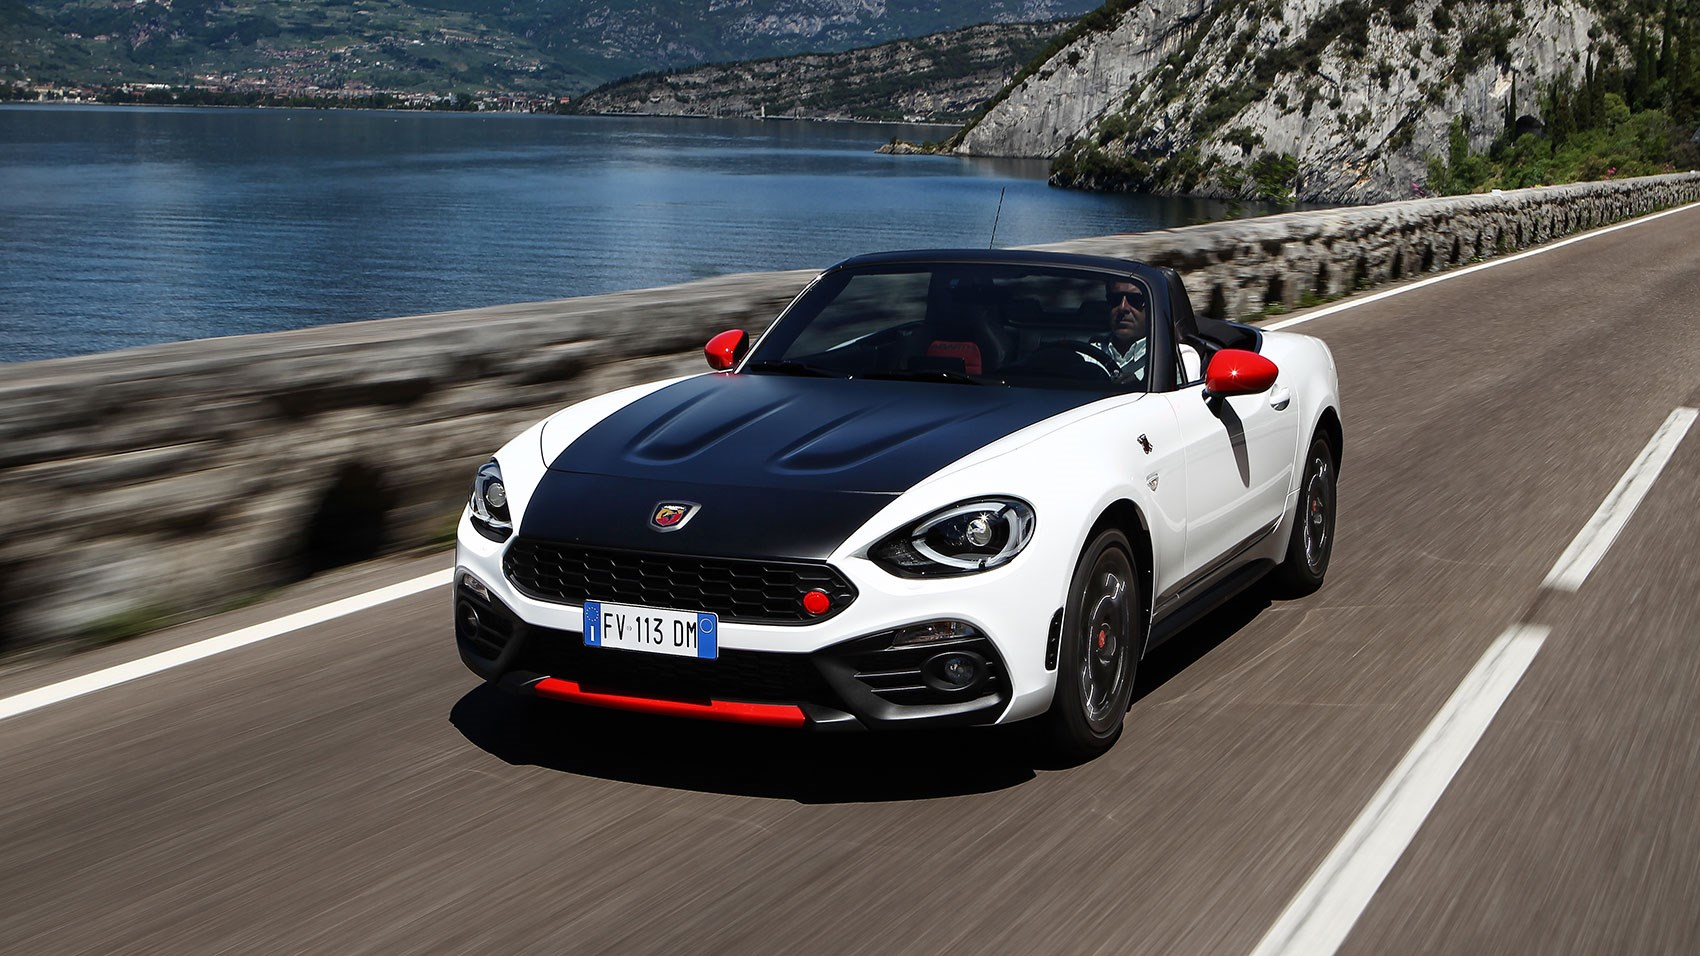 2017 fiat 124 spider abarth specs price and performance. Black Bedroom Furniture Sets. Home Design Ideas